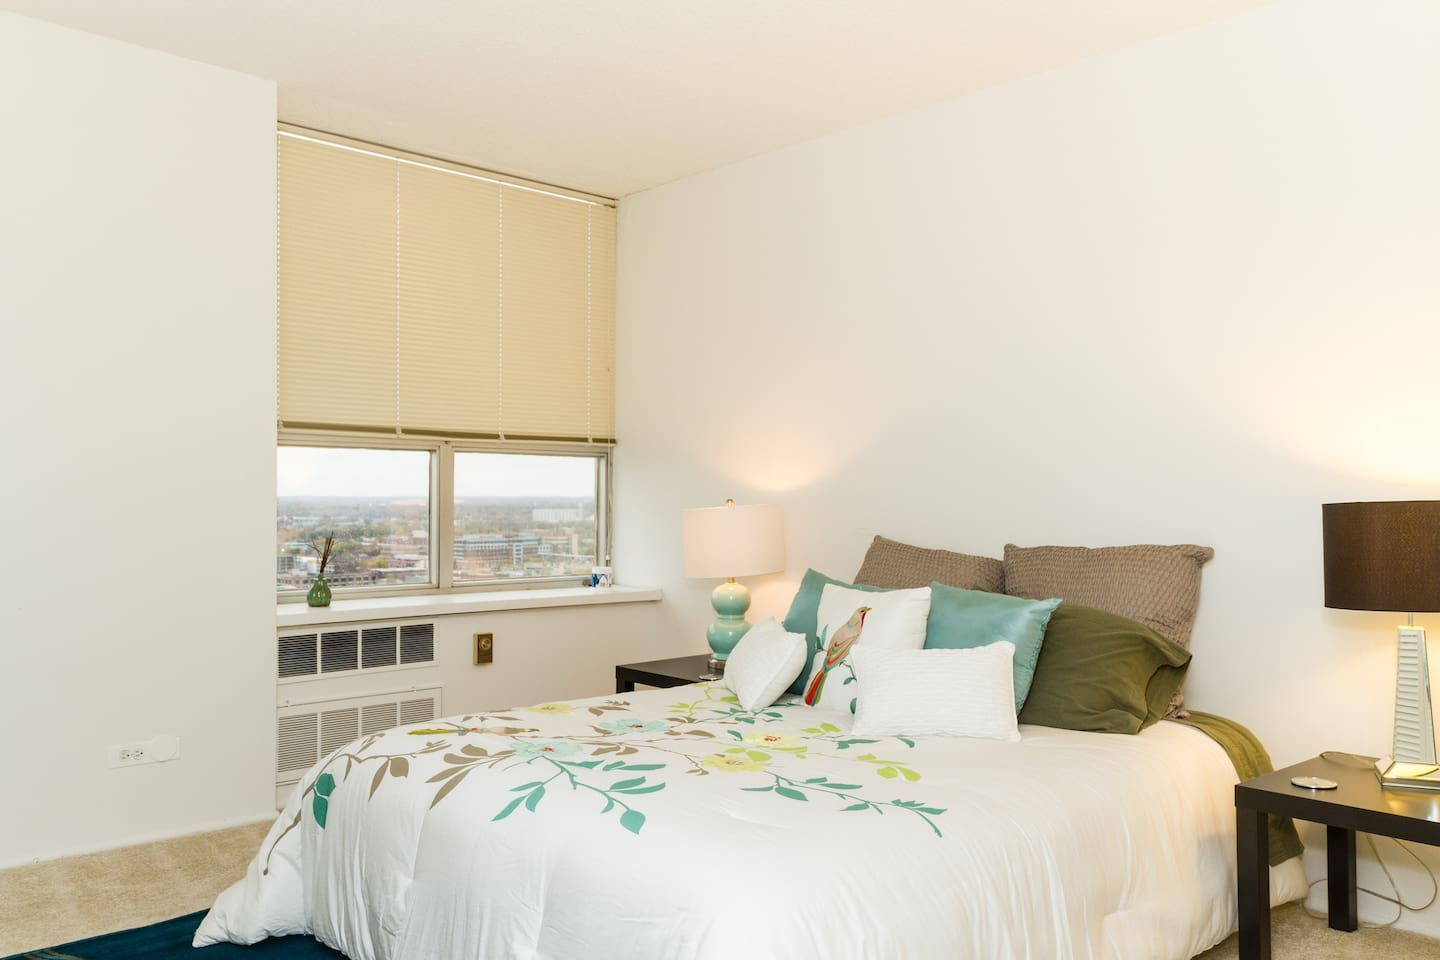 The bedroom offers wonderful views of Indy and is independent from the other bedroom offering privacy and comfort.